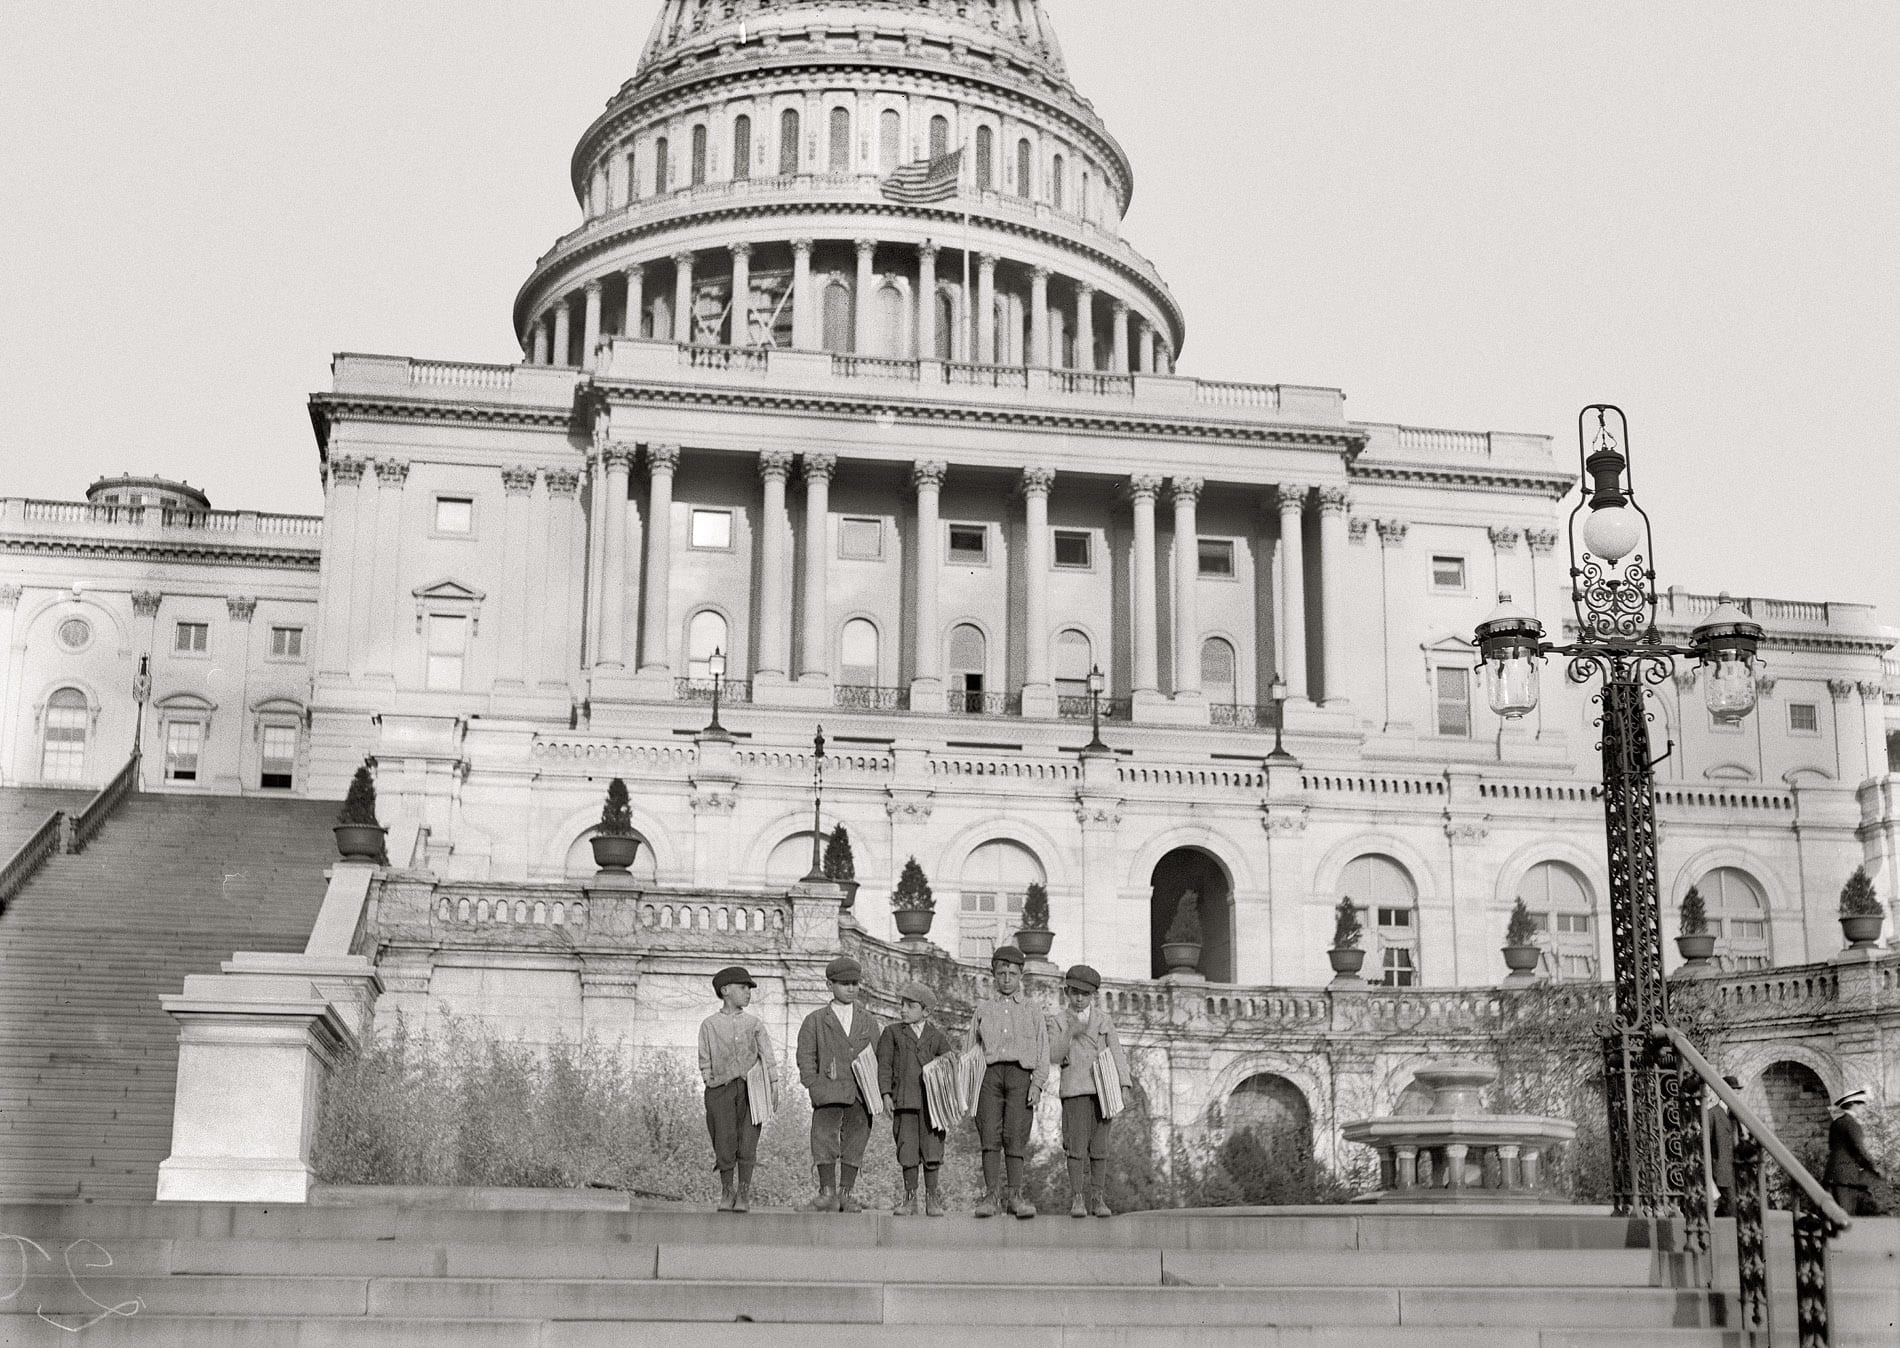 """April 11, 1912. Washington, D.C. """"Group of newsies selling on Capitol steps. Tony Passaro, 8 yrs. old, 124 Schottes Alley N.E.; Dan Mercurio, 9 yrs. old, a chronic truant, 150 Schottes Alley; said he made 8 cents to-day. Joseph Tucci, 10 years old, 411½ 5th St. N.E.; Peter Pepe, 10 yrs. old, 24 Wonders Court; John Carlino, 11 yrs. old."""" Photograph and caption by Lewis Wickes Hine."""